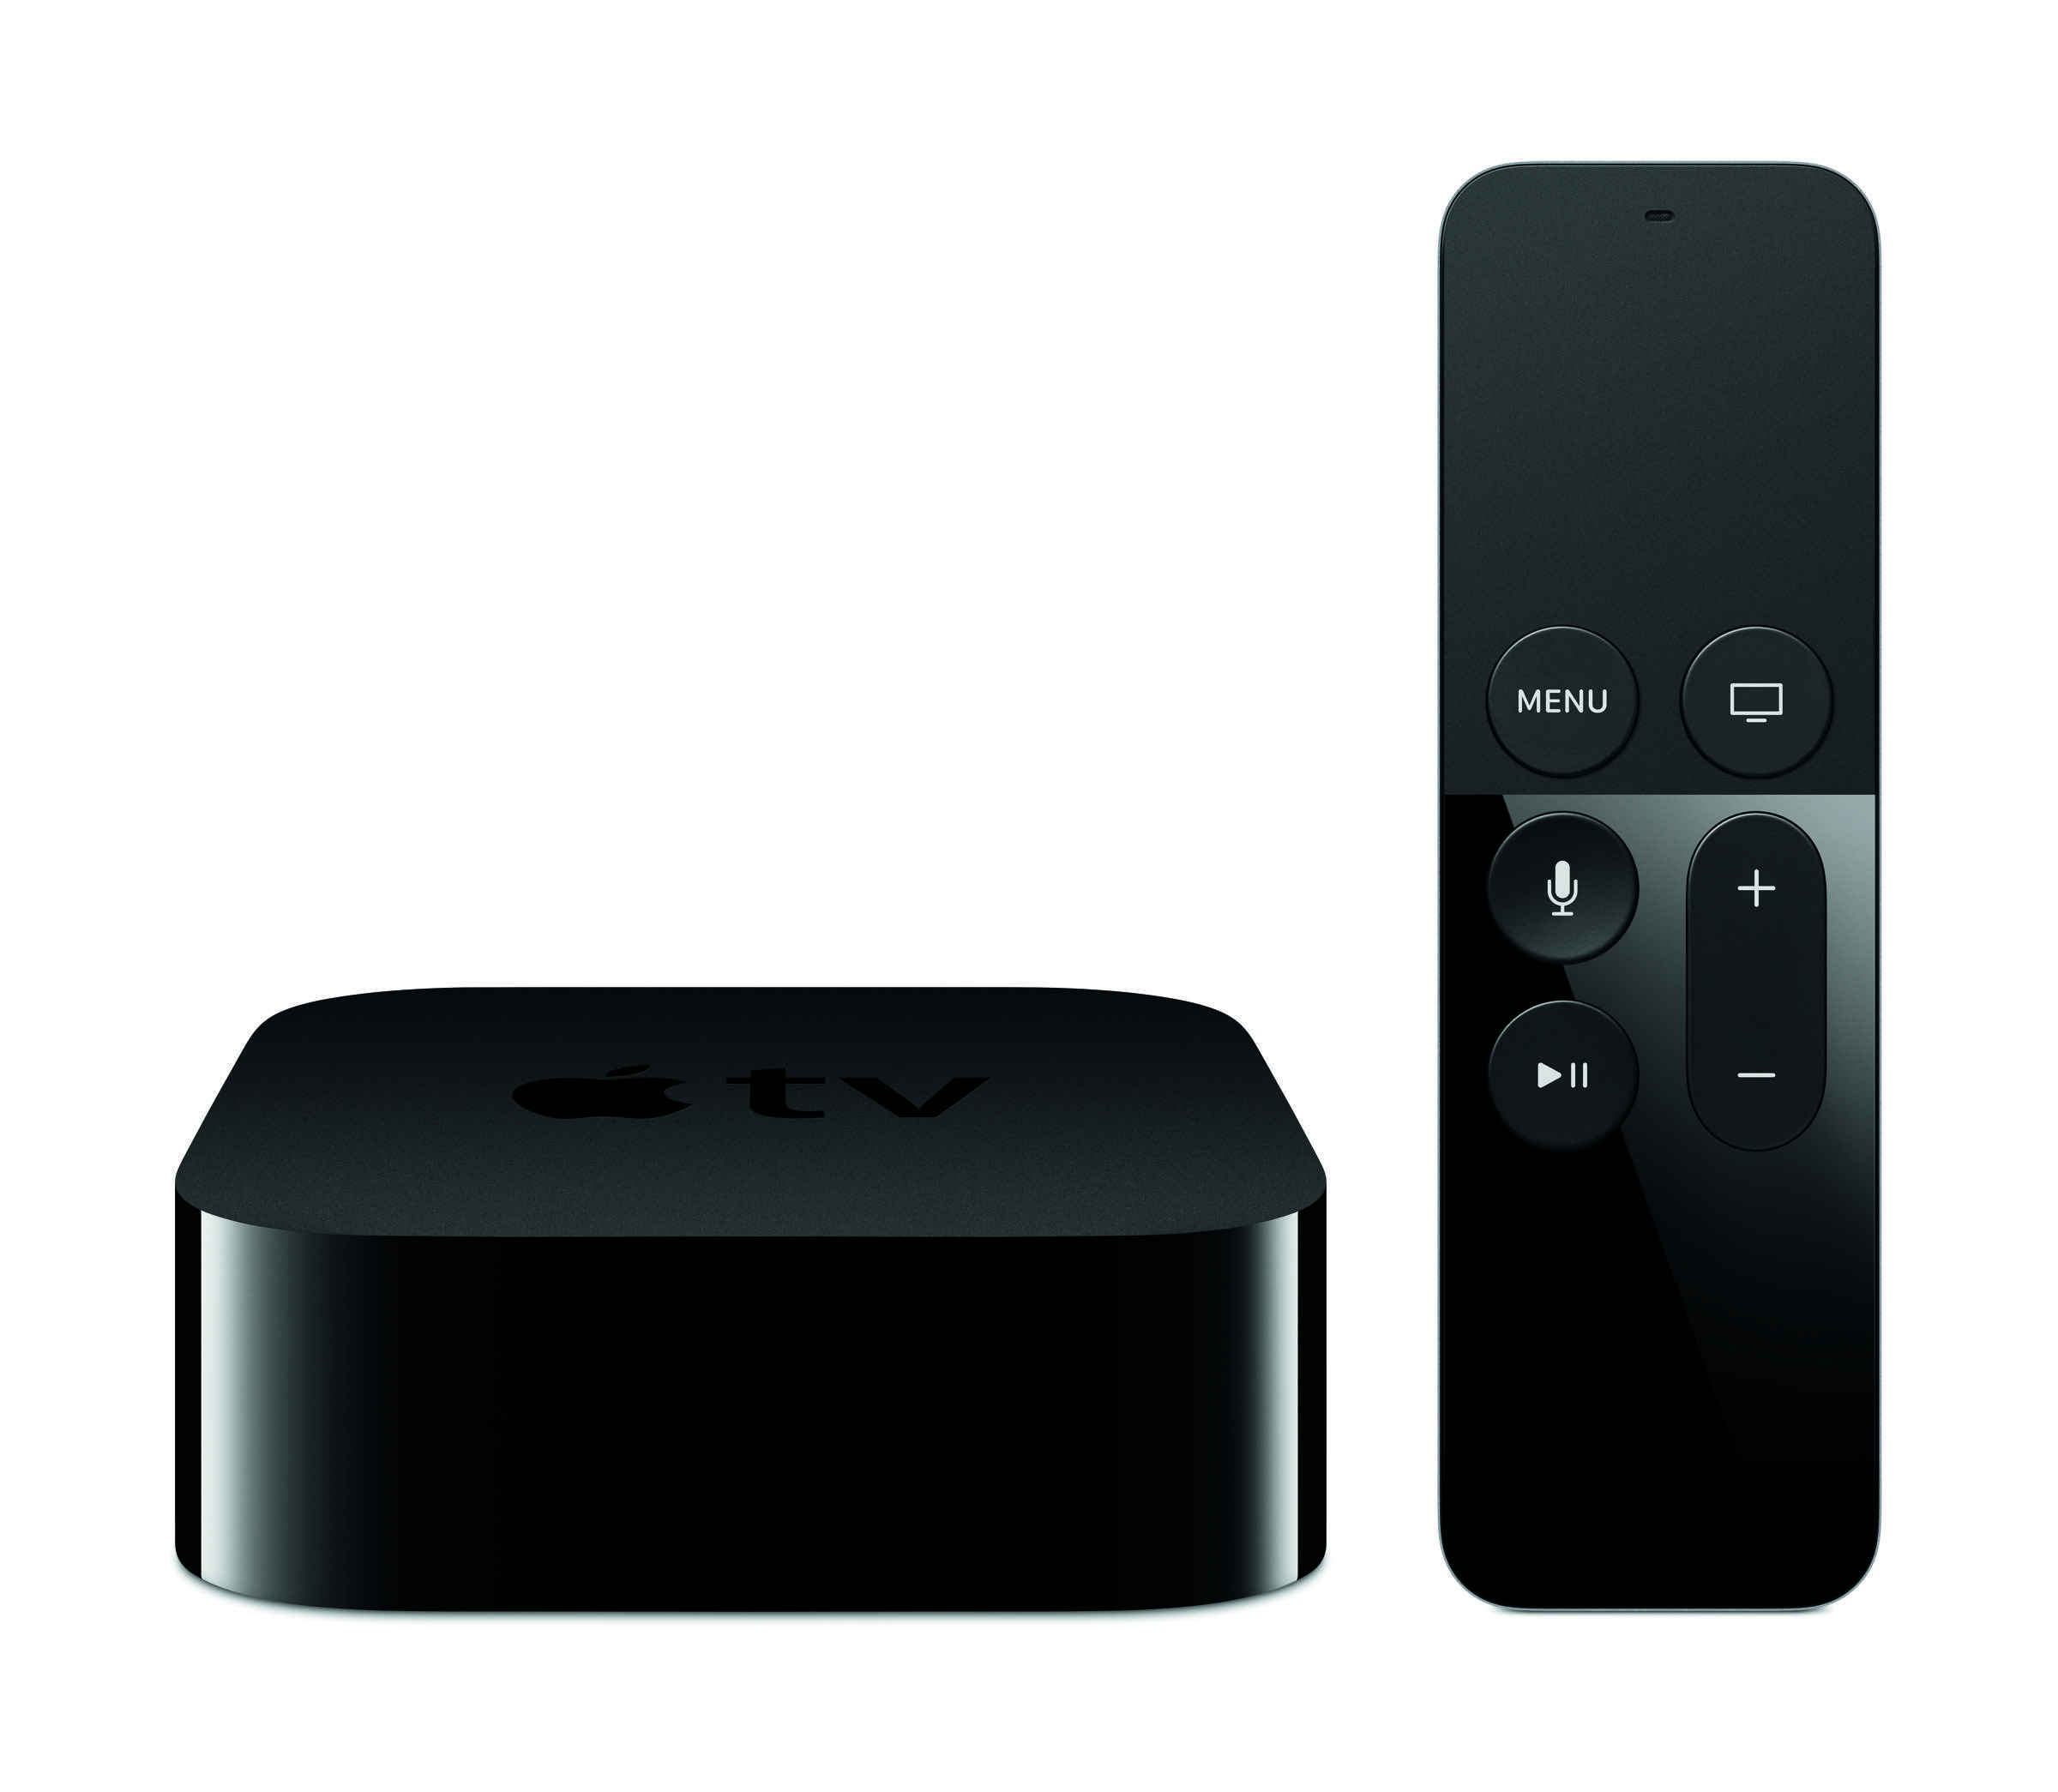 New Apple TV Update: tvOS 9.2